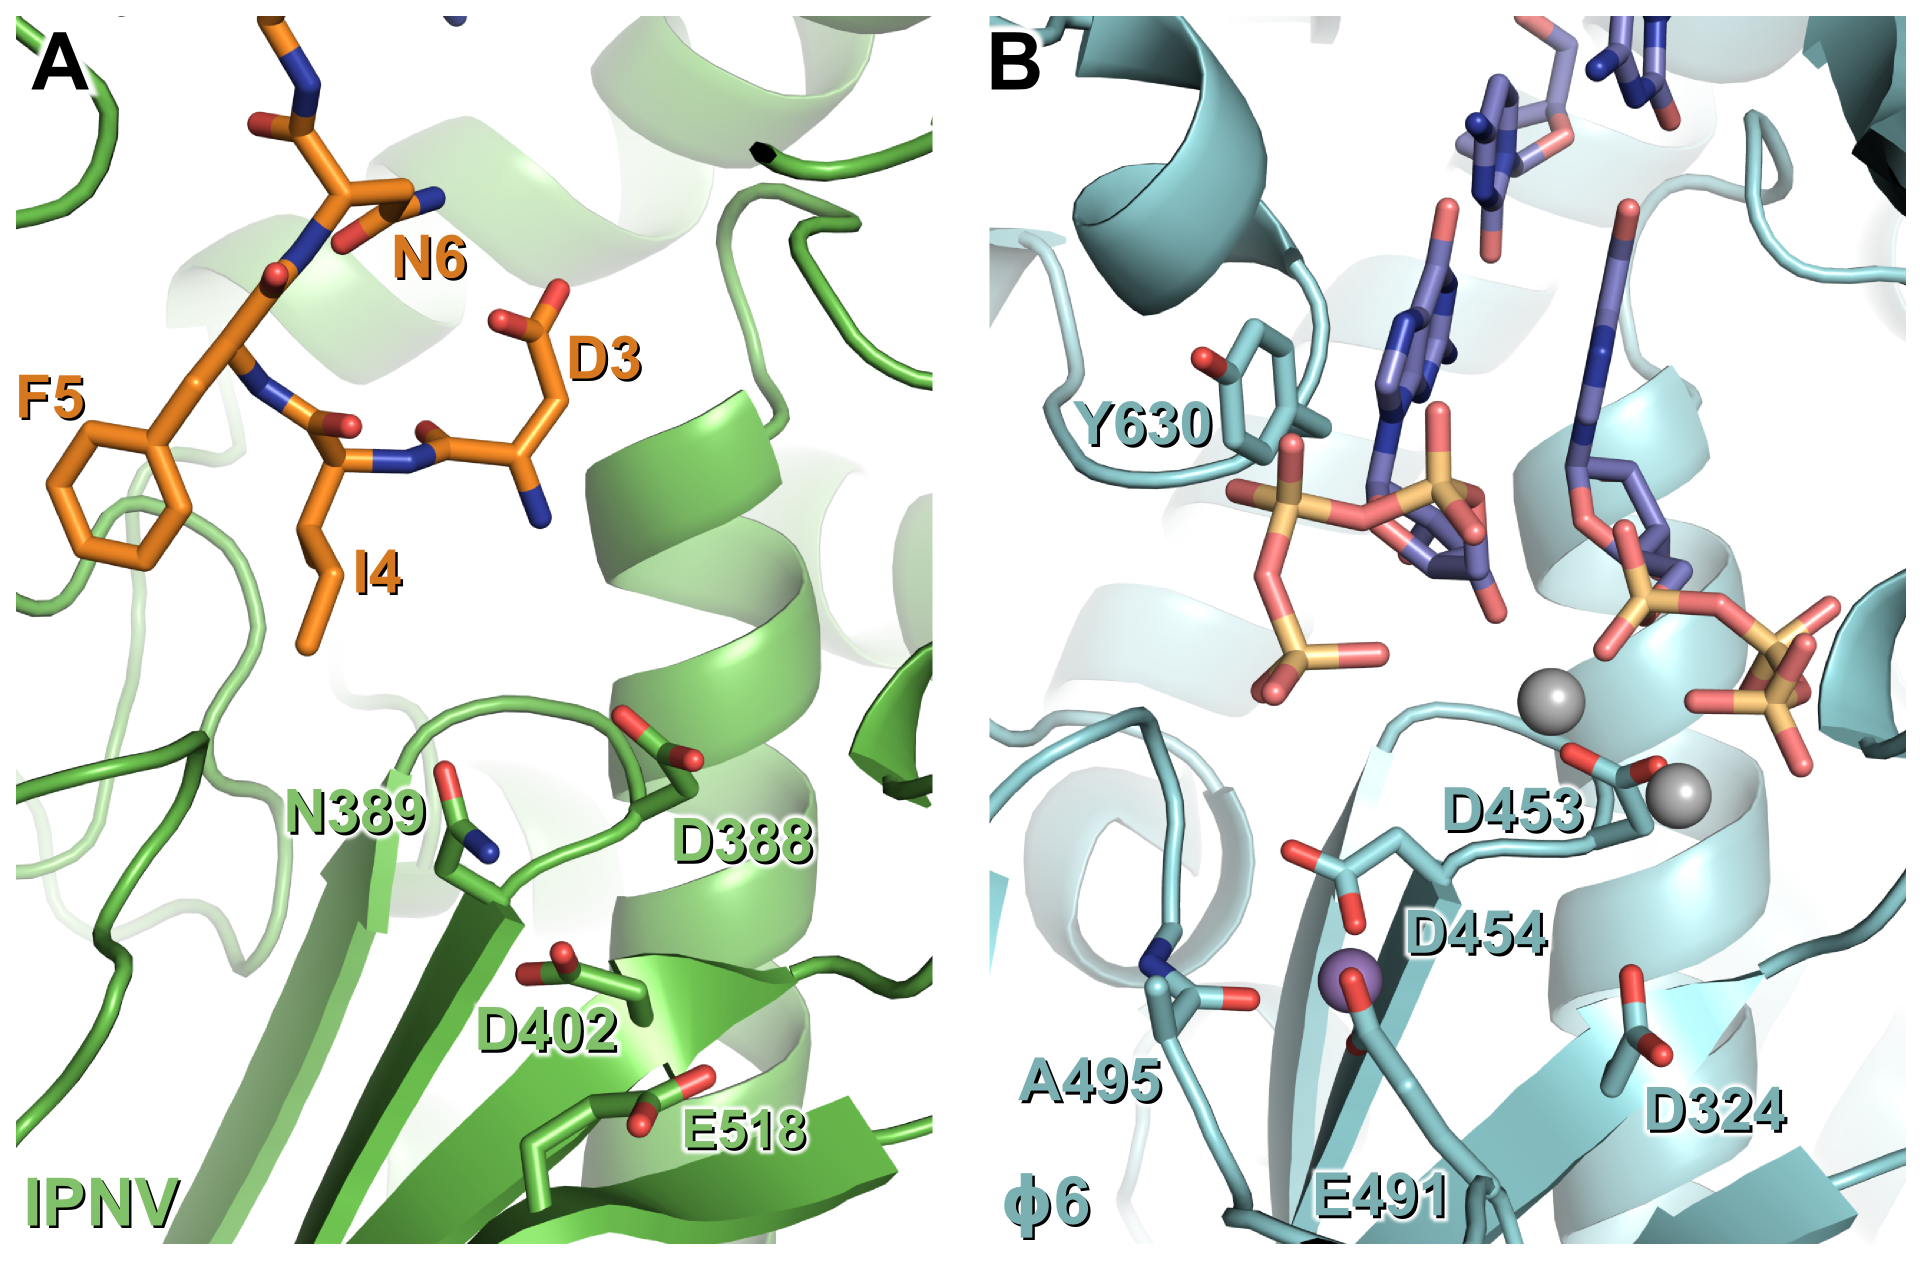 N-terminal tail binding at the active site of IPNV VP1 resembles the nascent daughter strand of a viral polymerase initiation complex.